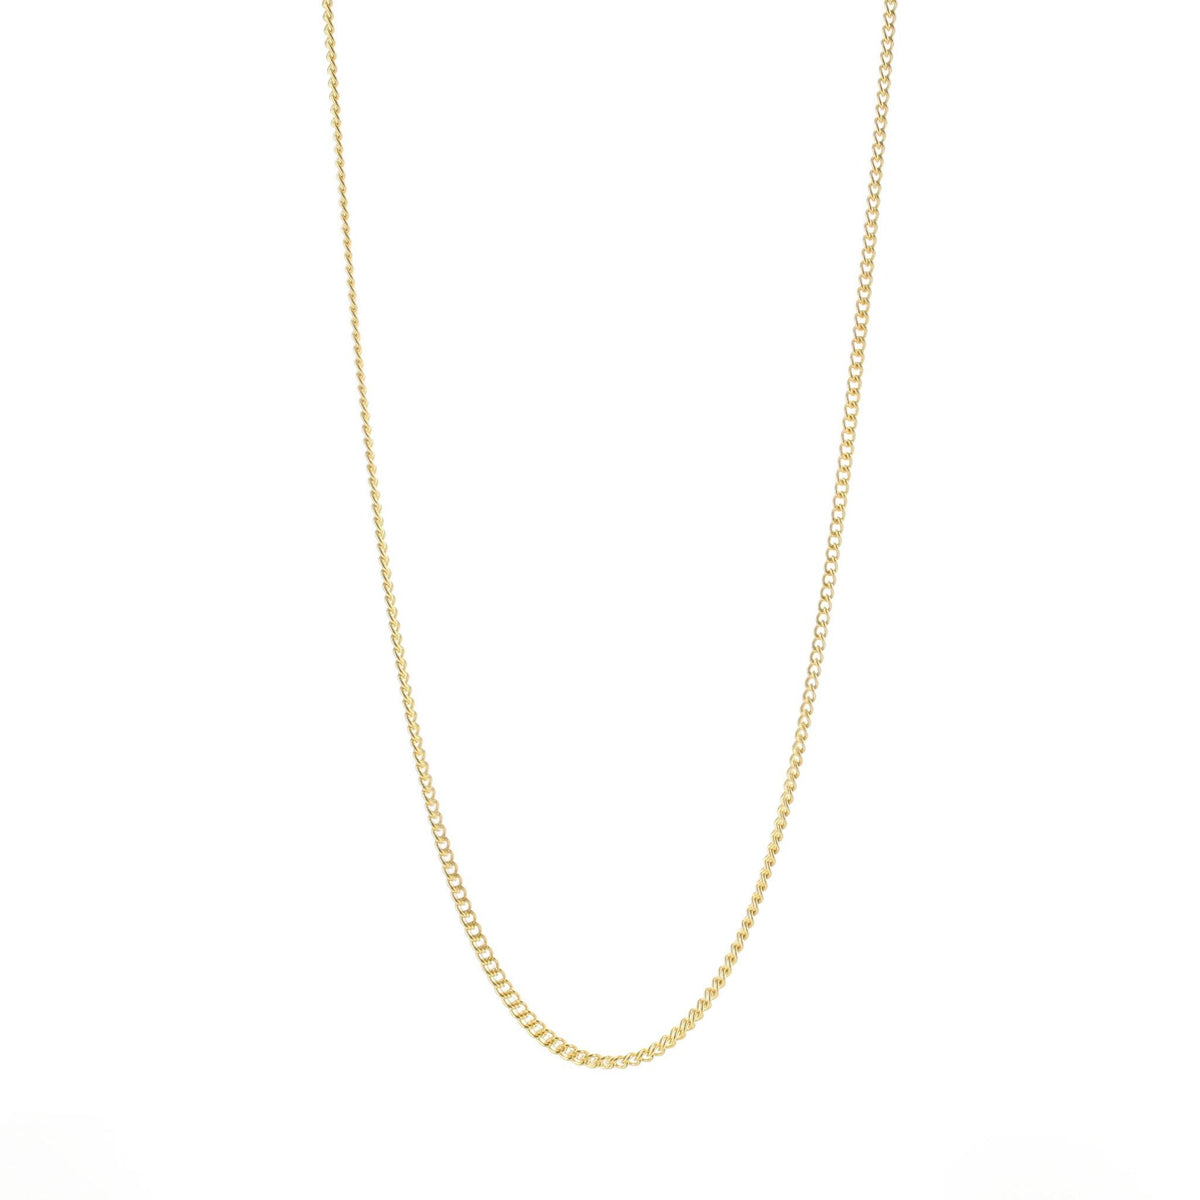 "CHARMING 28-30"" NECKLACE GOLD - SO PRETTY CARA COTTER"